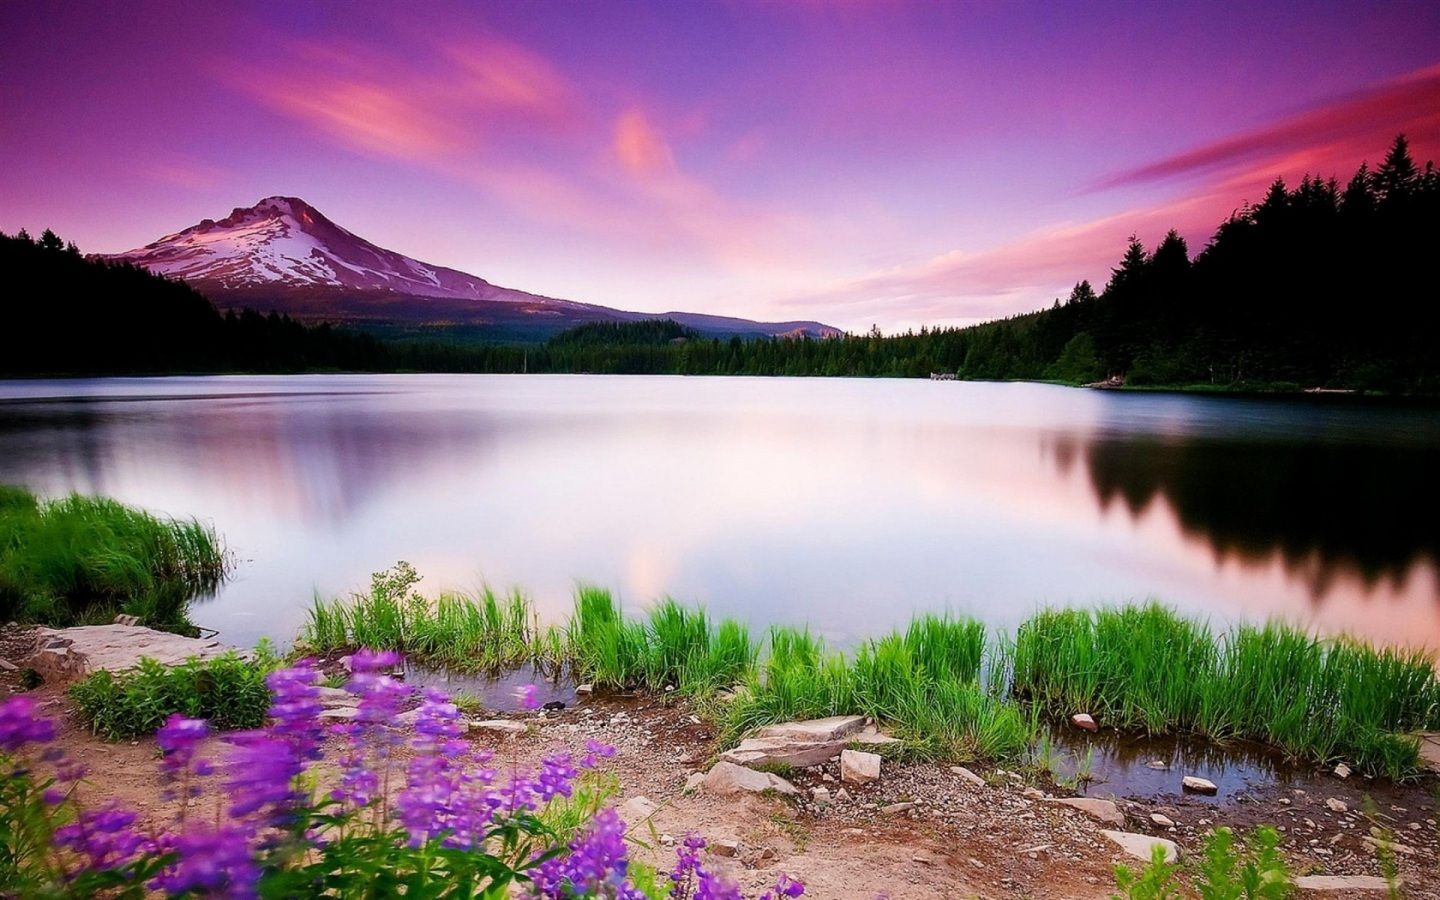 Wallpapers For Gt Beautiful Scenery Mobile Beautiful Nature Scenery Wallpaper Wallpapers Hd For Mobile Fr Scenery Wallpaper Beautiful Nature Nature Backgrounds